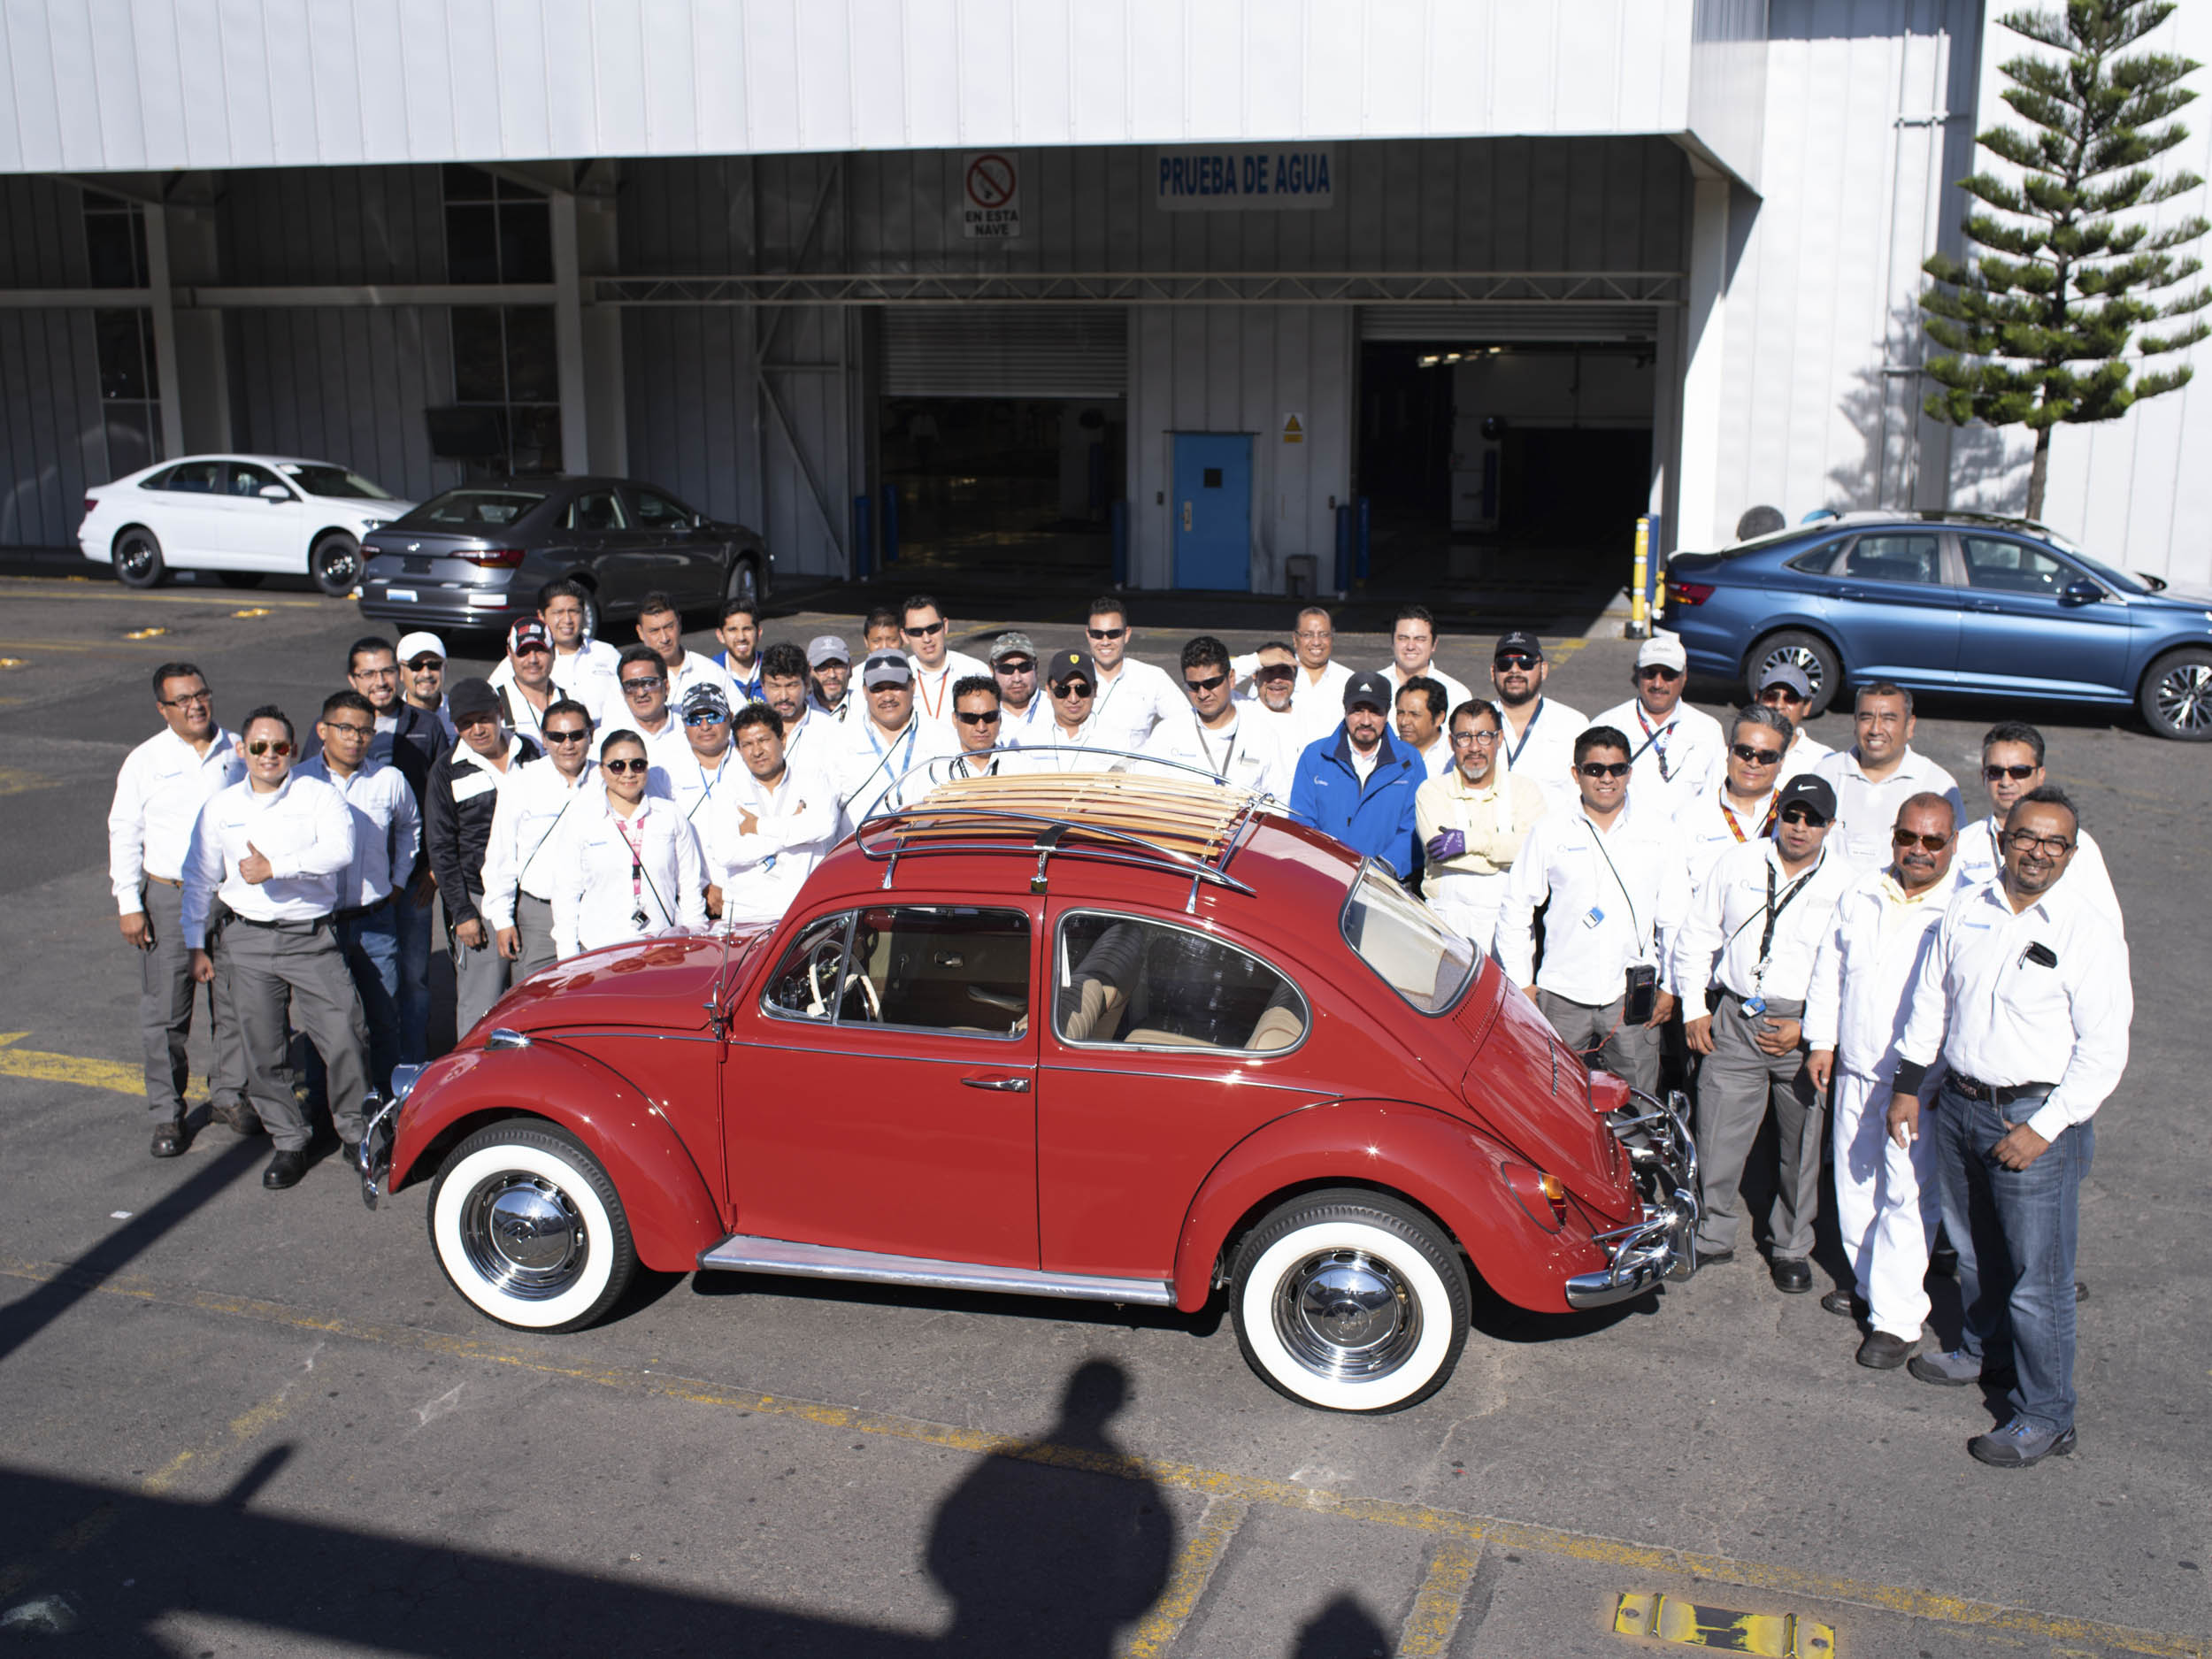 1967 Volkswagen Beetle restoration team